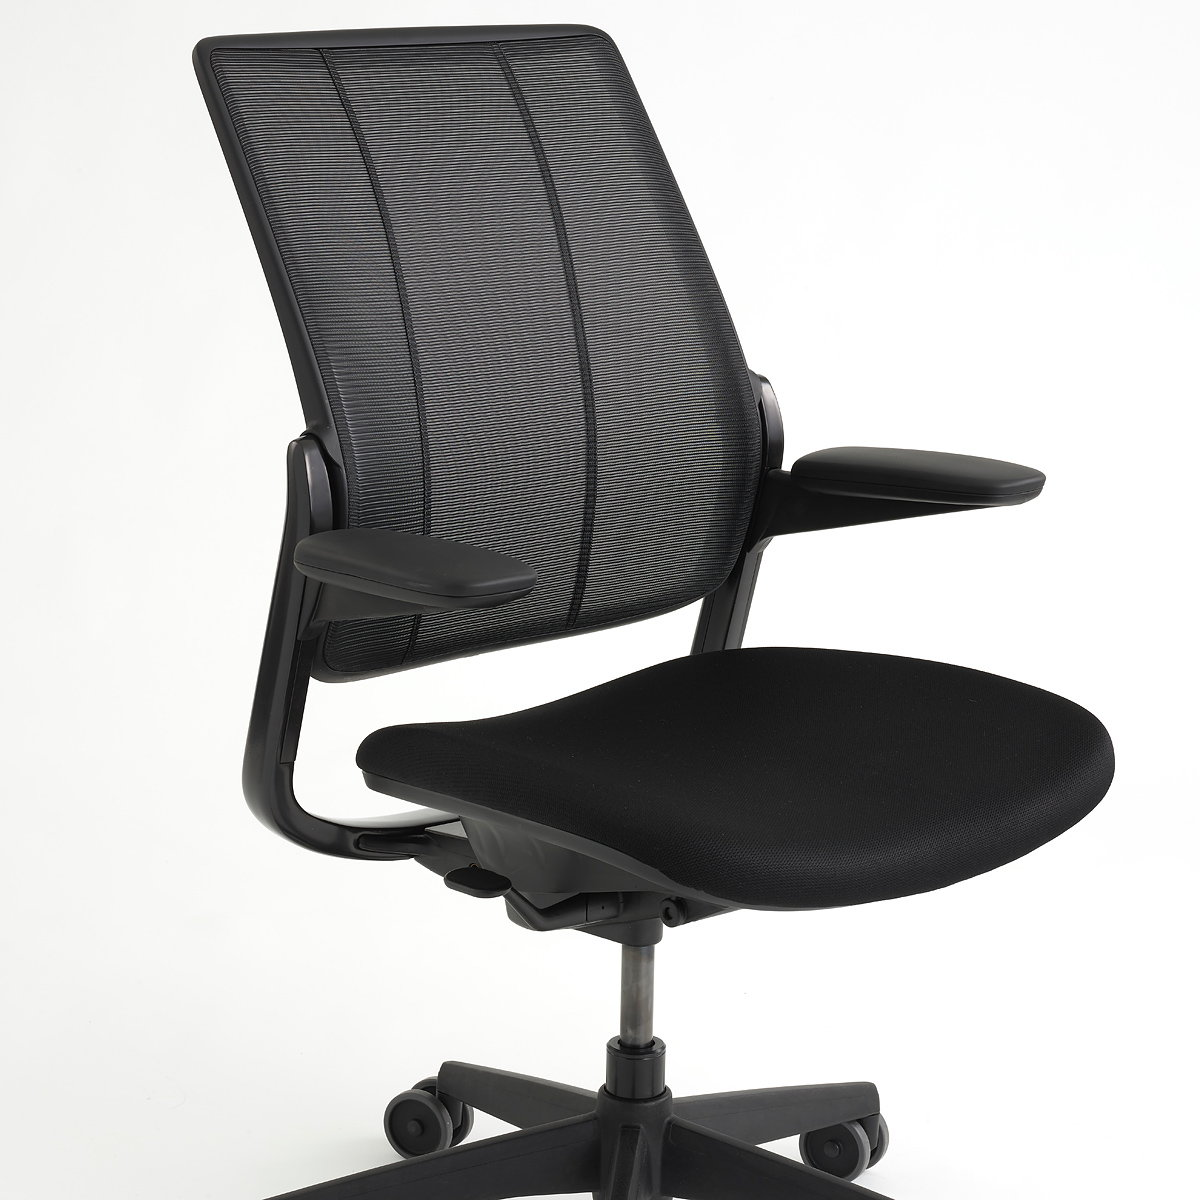 Humanscale Unveils Smart Ocean - First-Ever Task Chair Made with Recycled Fishing Nets